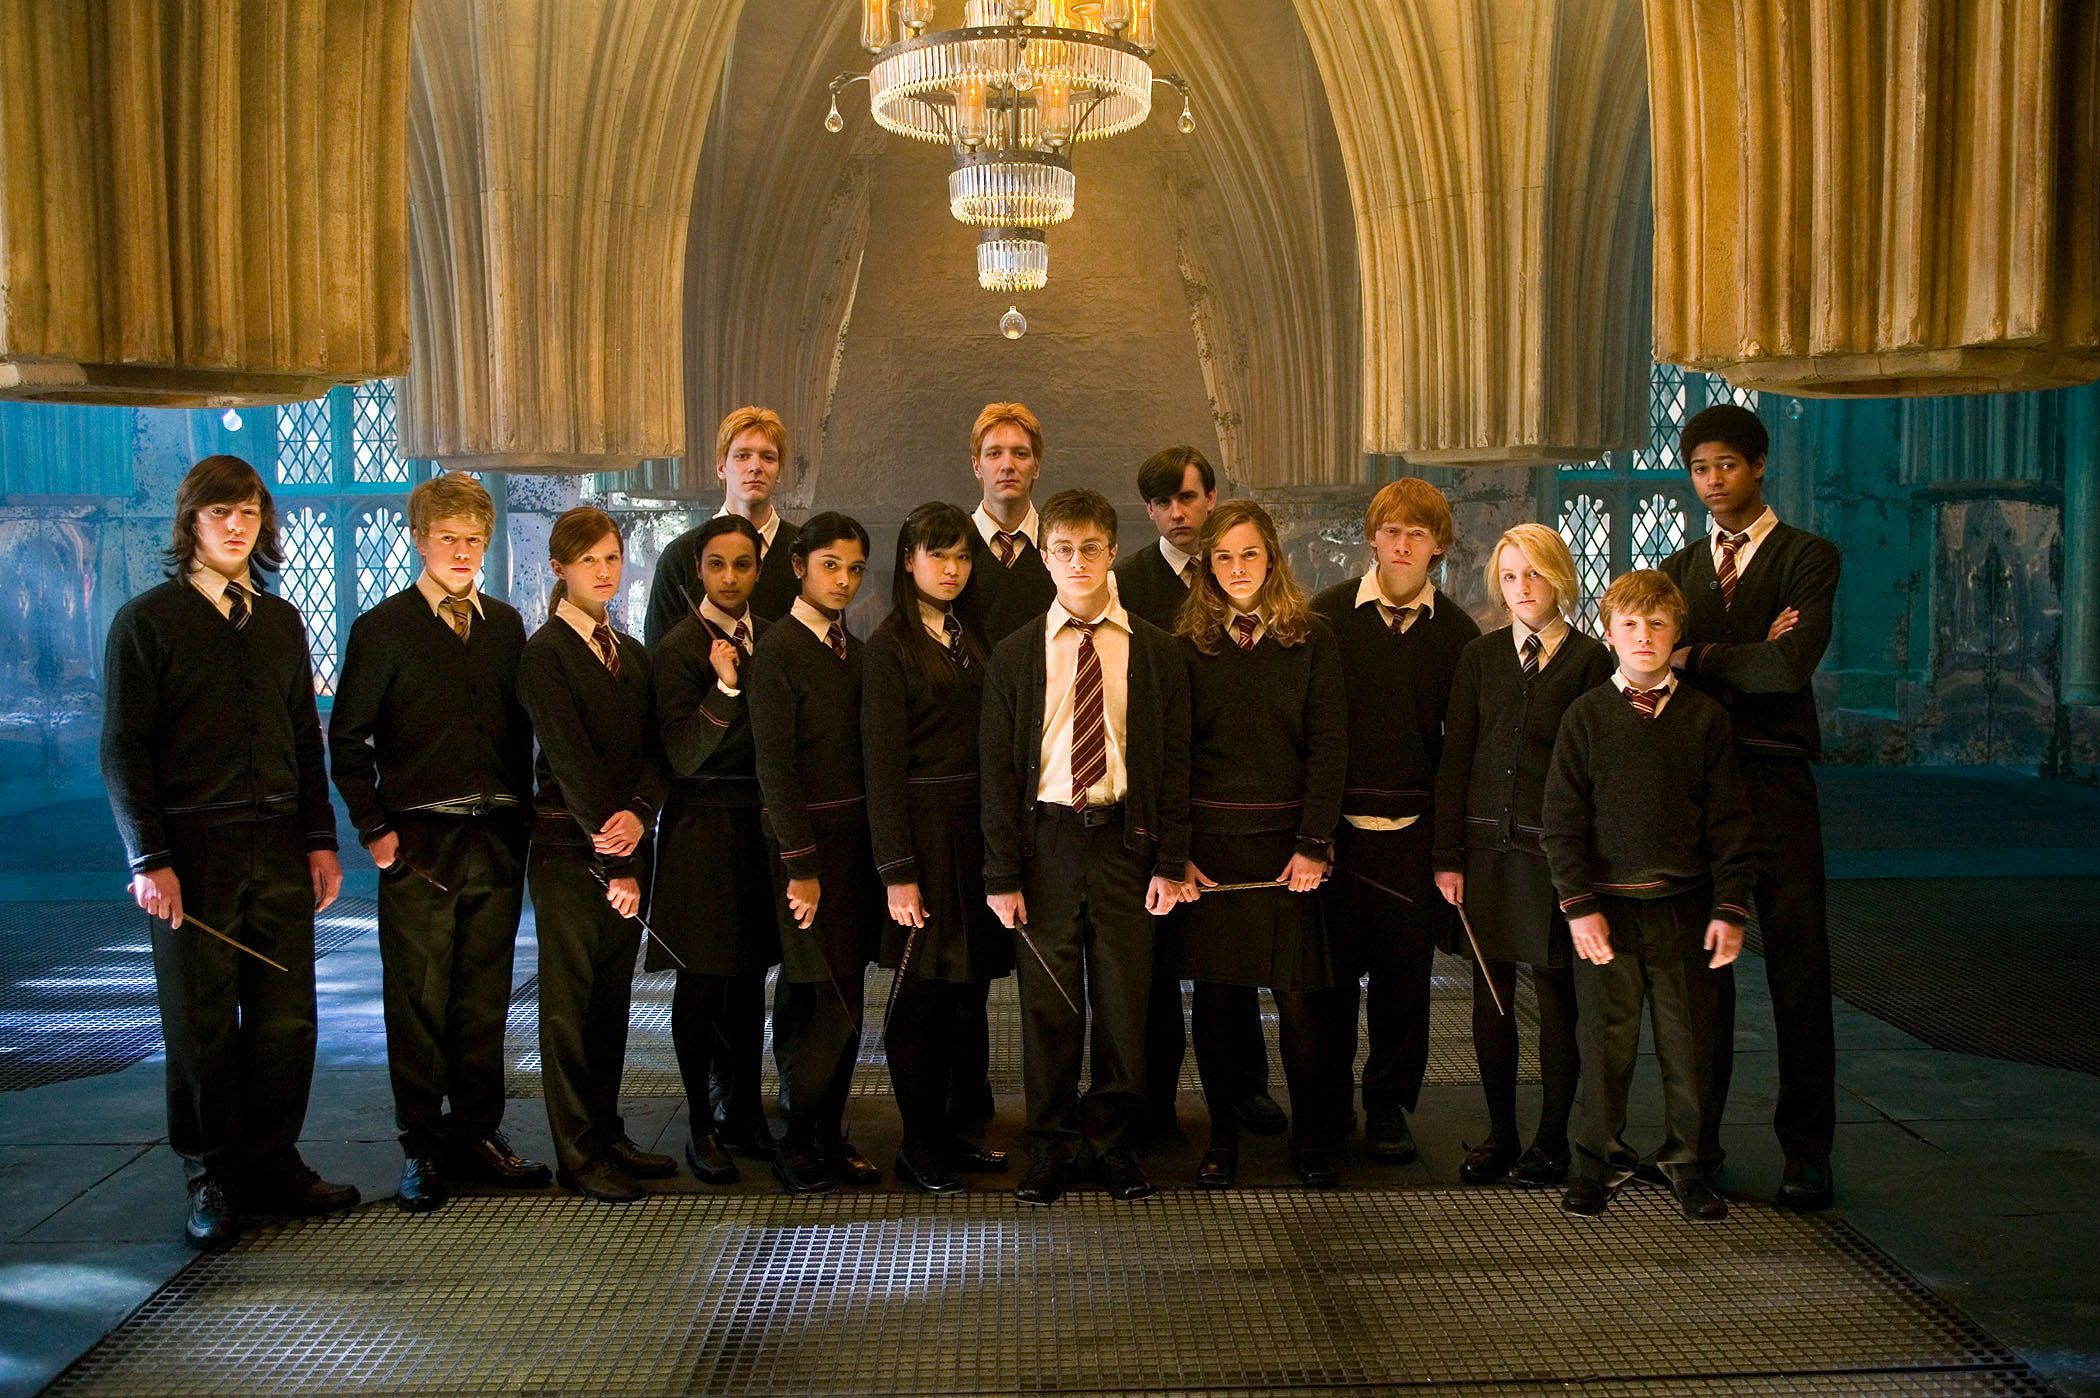 http://www.collider.com/uploads/imageGallery/Harry_Potter_Order_of_Phoenix/harry_potter_and_the_order_of_the_phoenix_image__1_.jpg